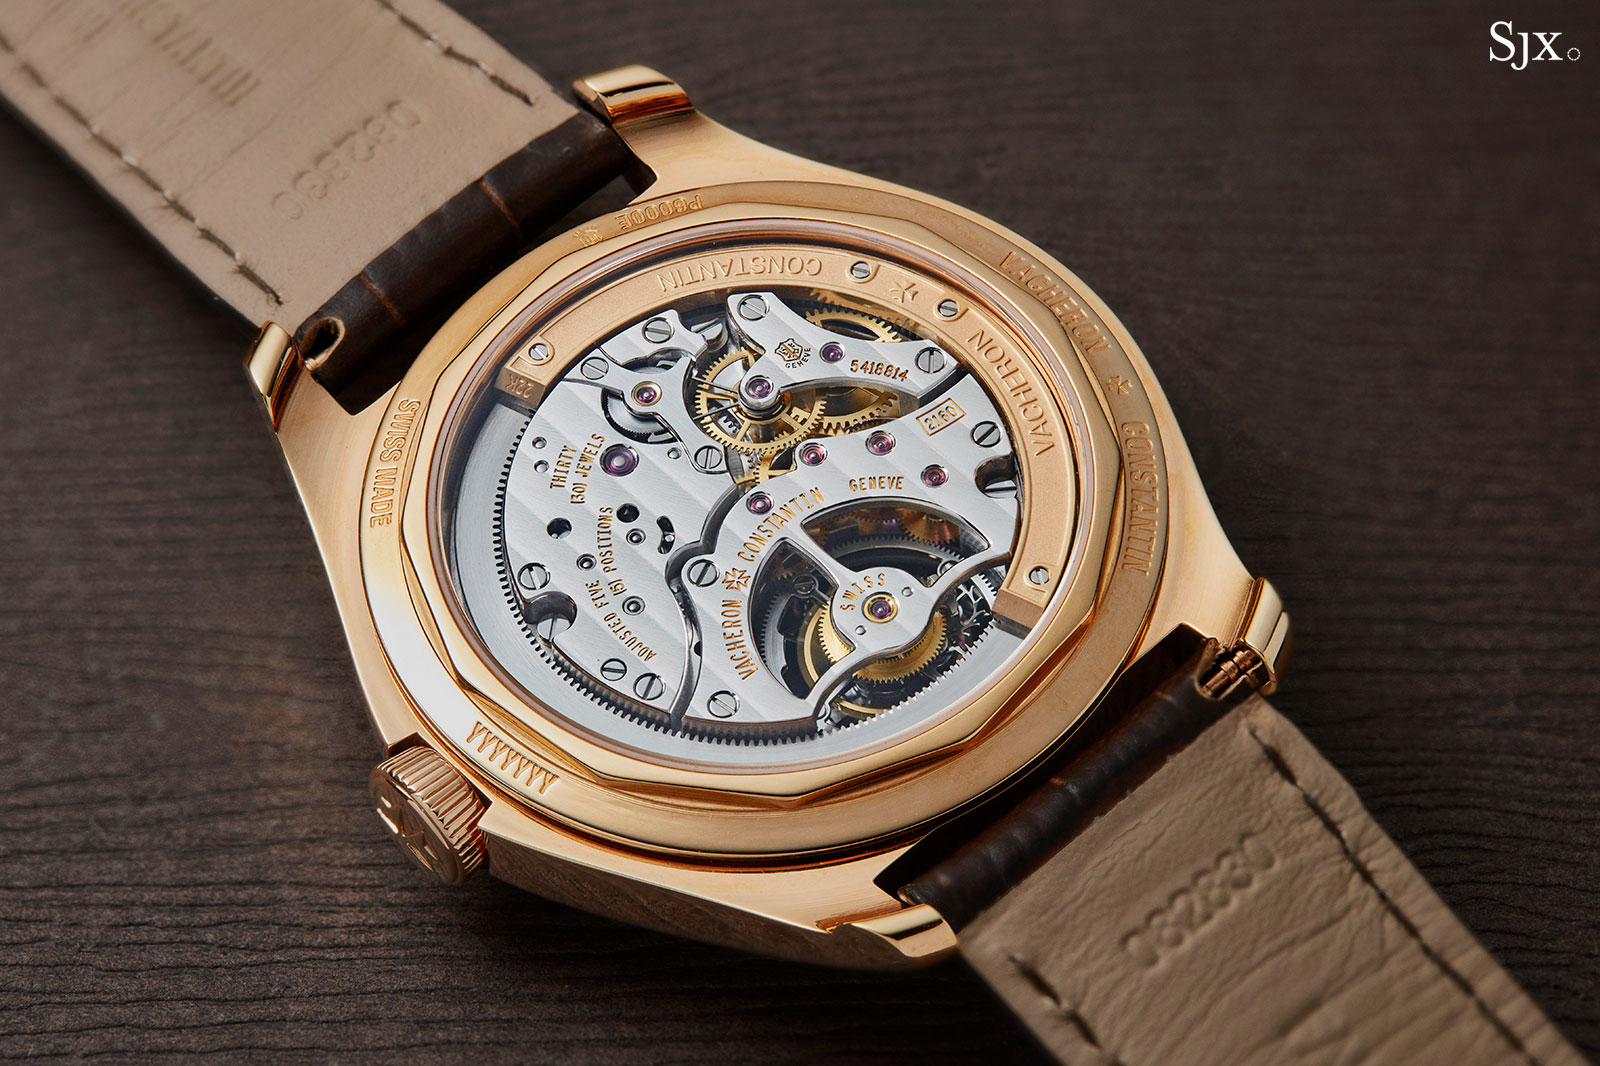 Vacheron Constantin FiftySix Tourbillon 12